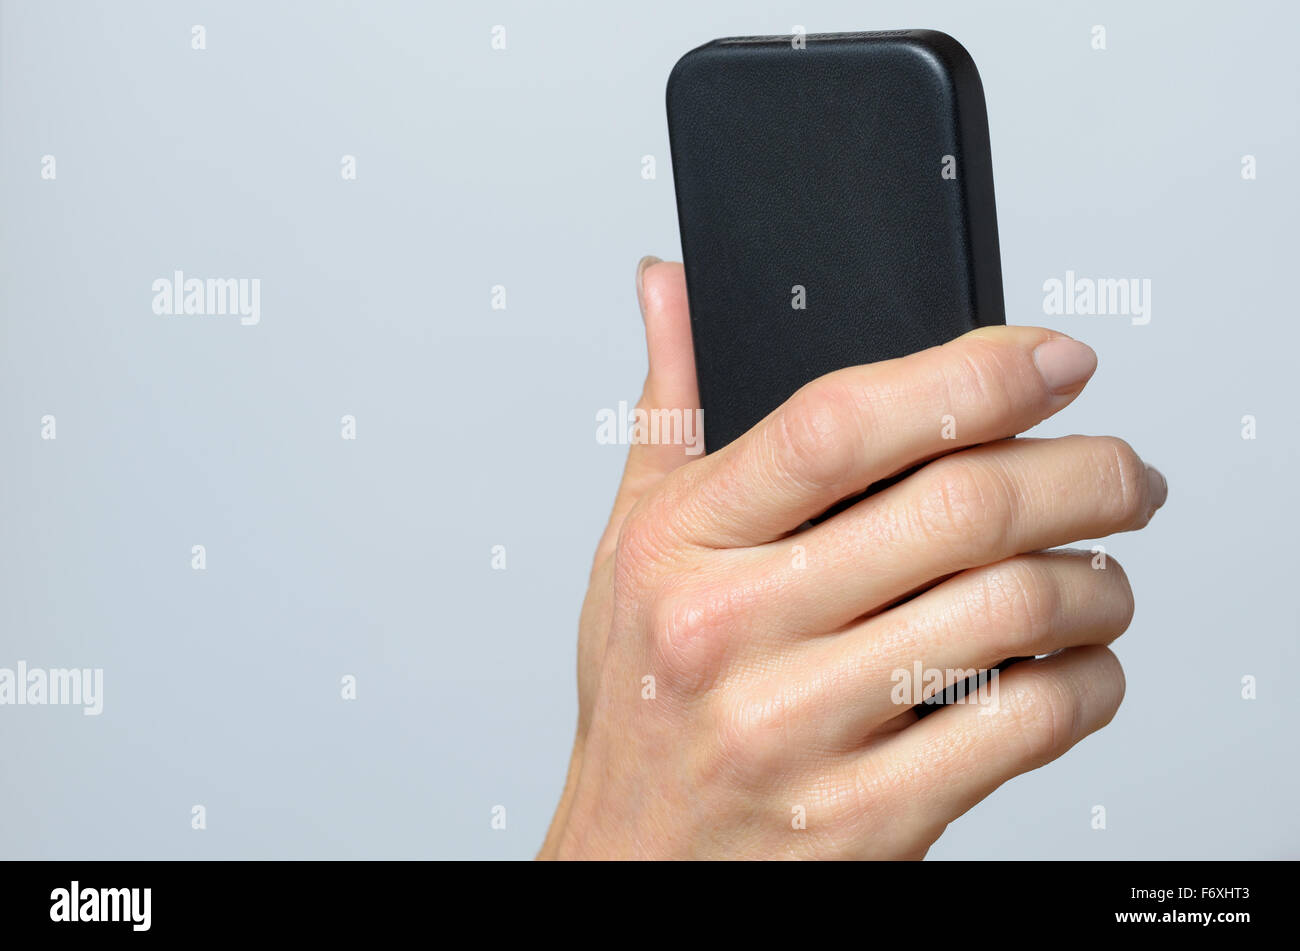 Hand holding a black cellular Against Gray Background with Copy Space. Stock Photo